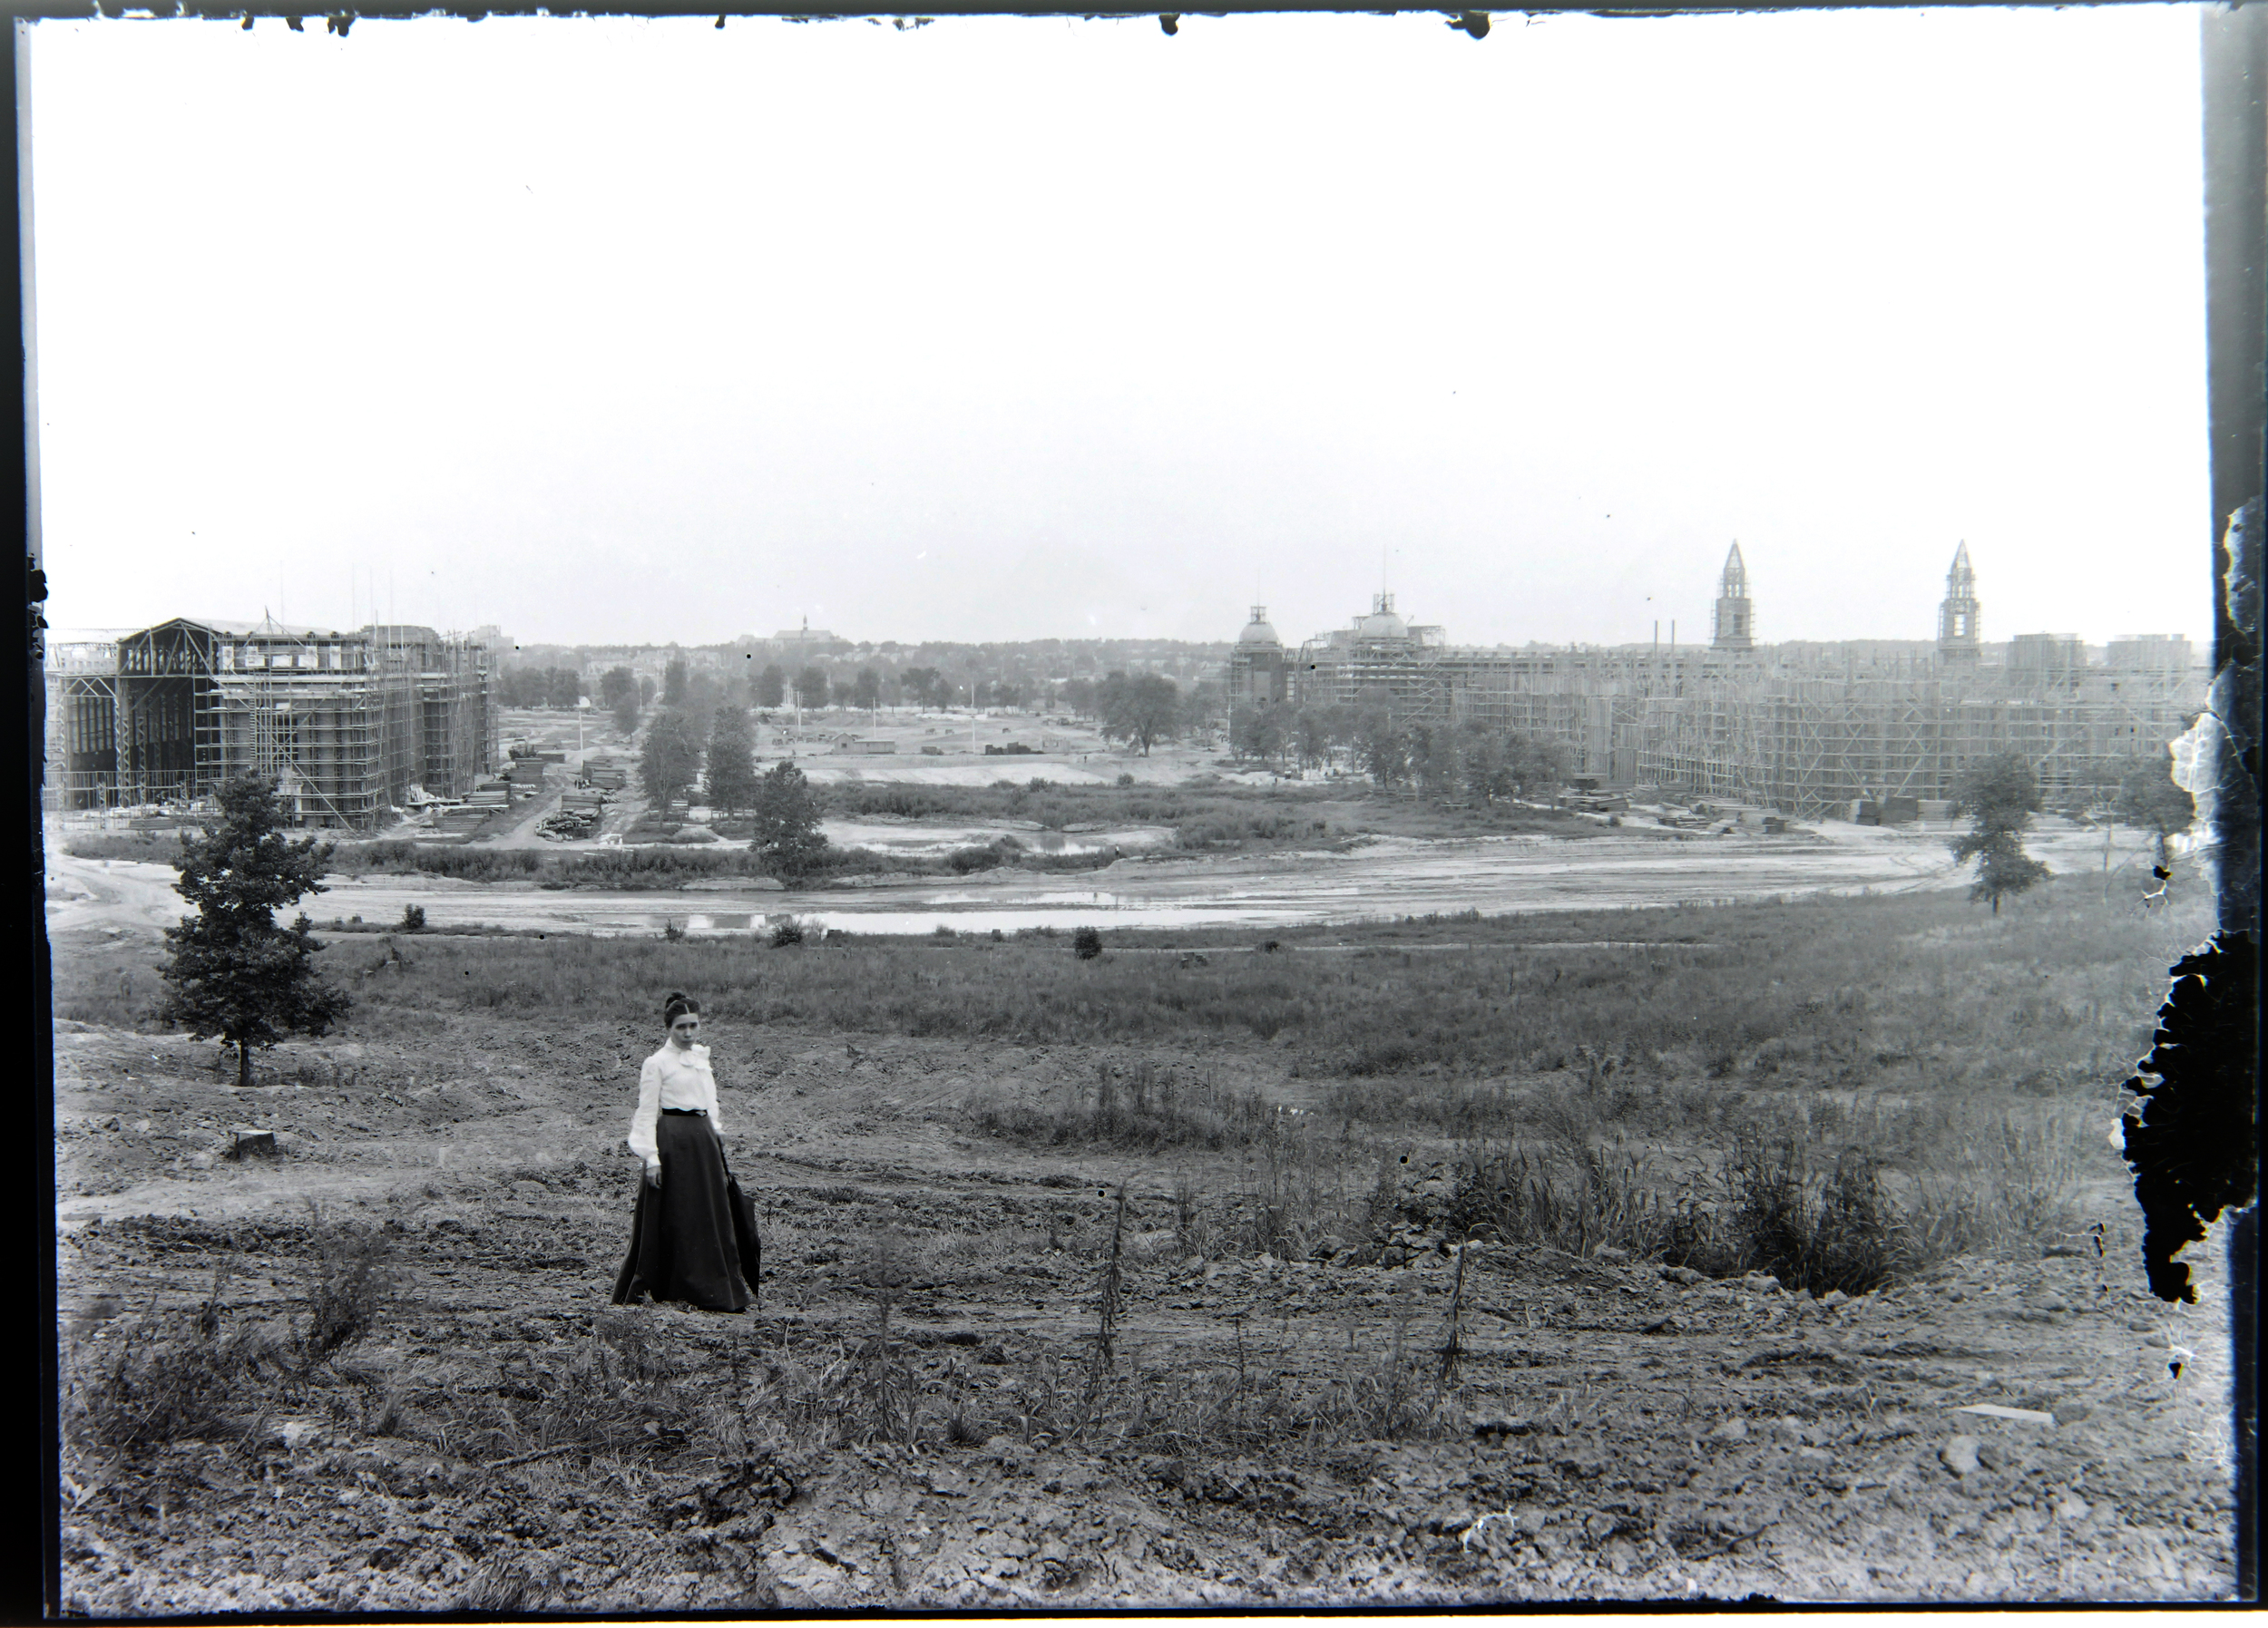 Here you can see a view looking east at Forest Park in St. Louis, MO during the building of the great World's Fair of 1904. This photo c. 1902.